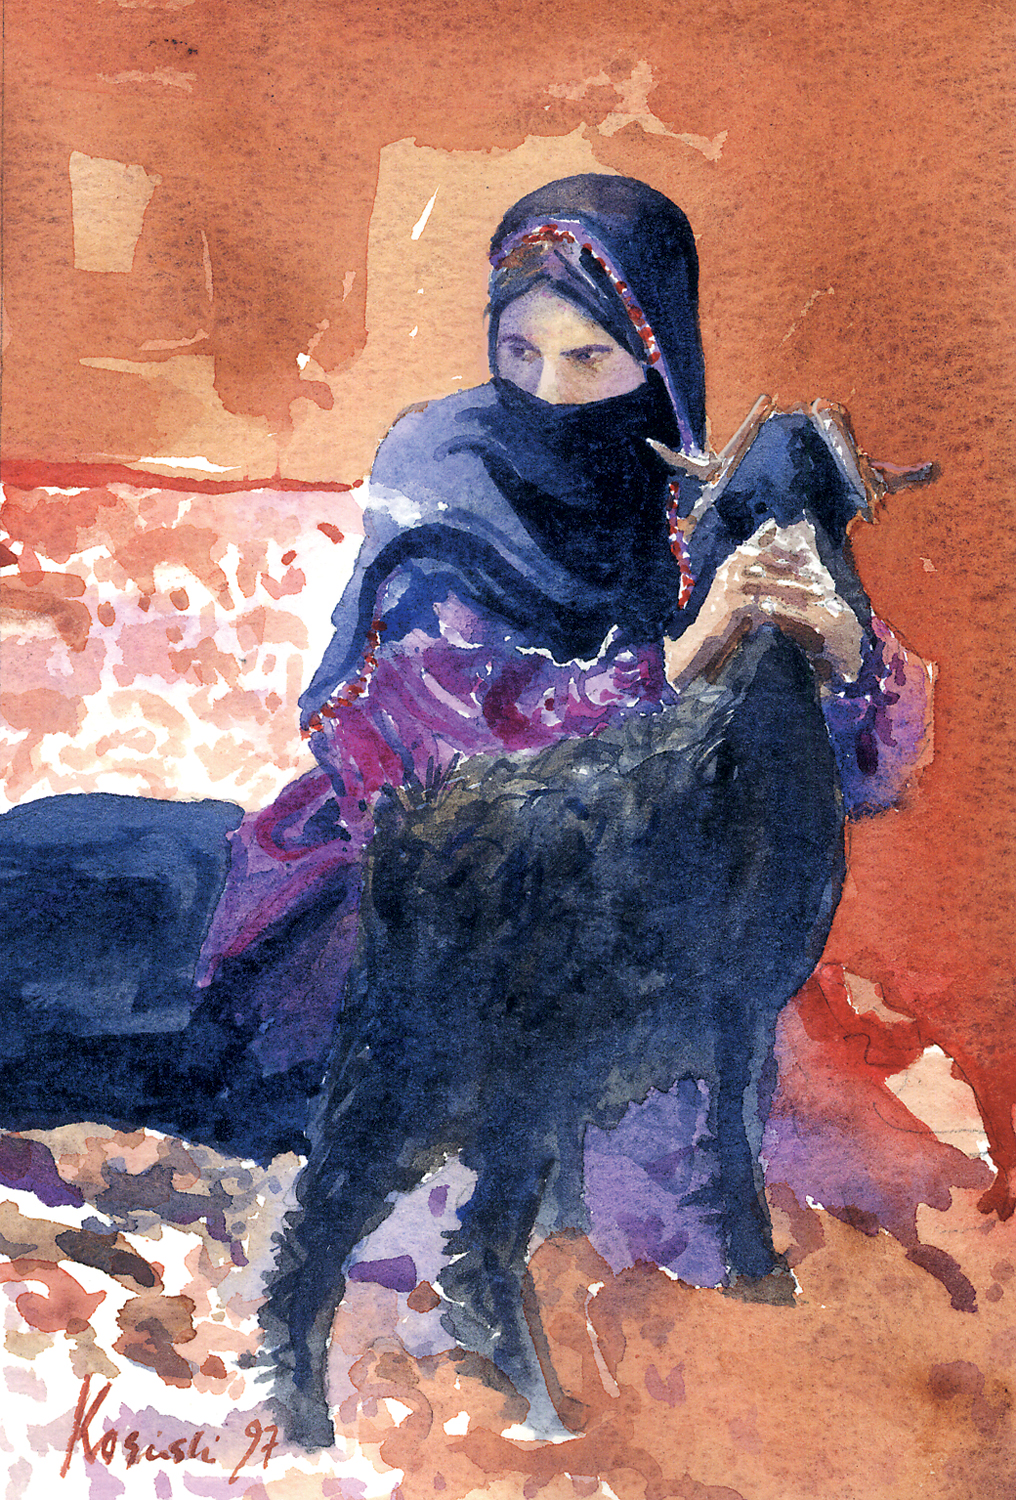 Bedouin with Goat